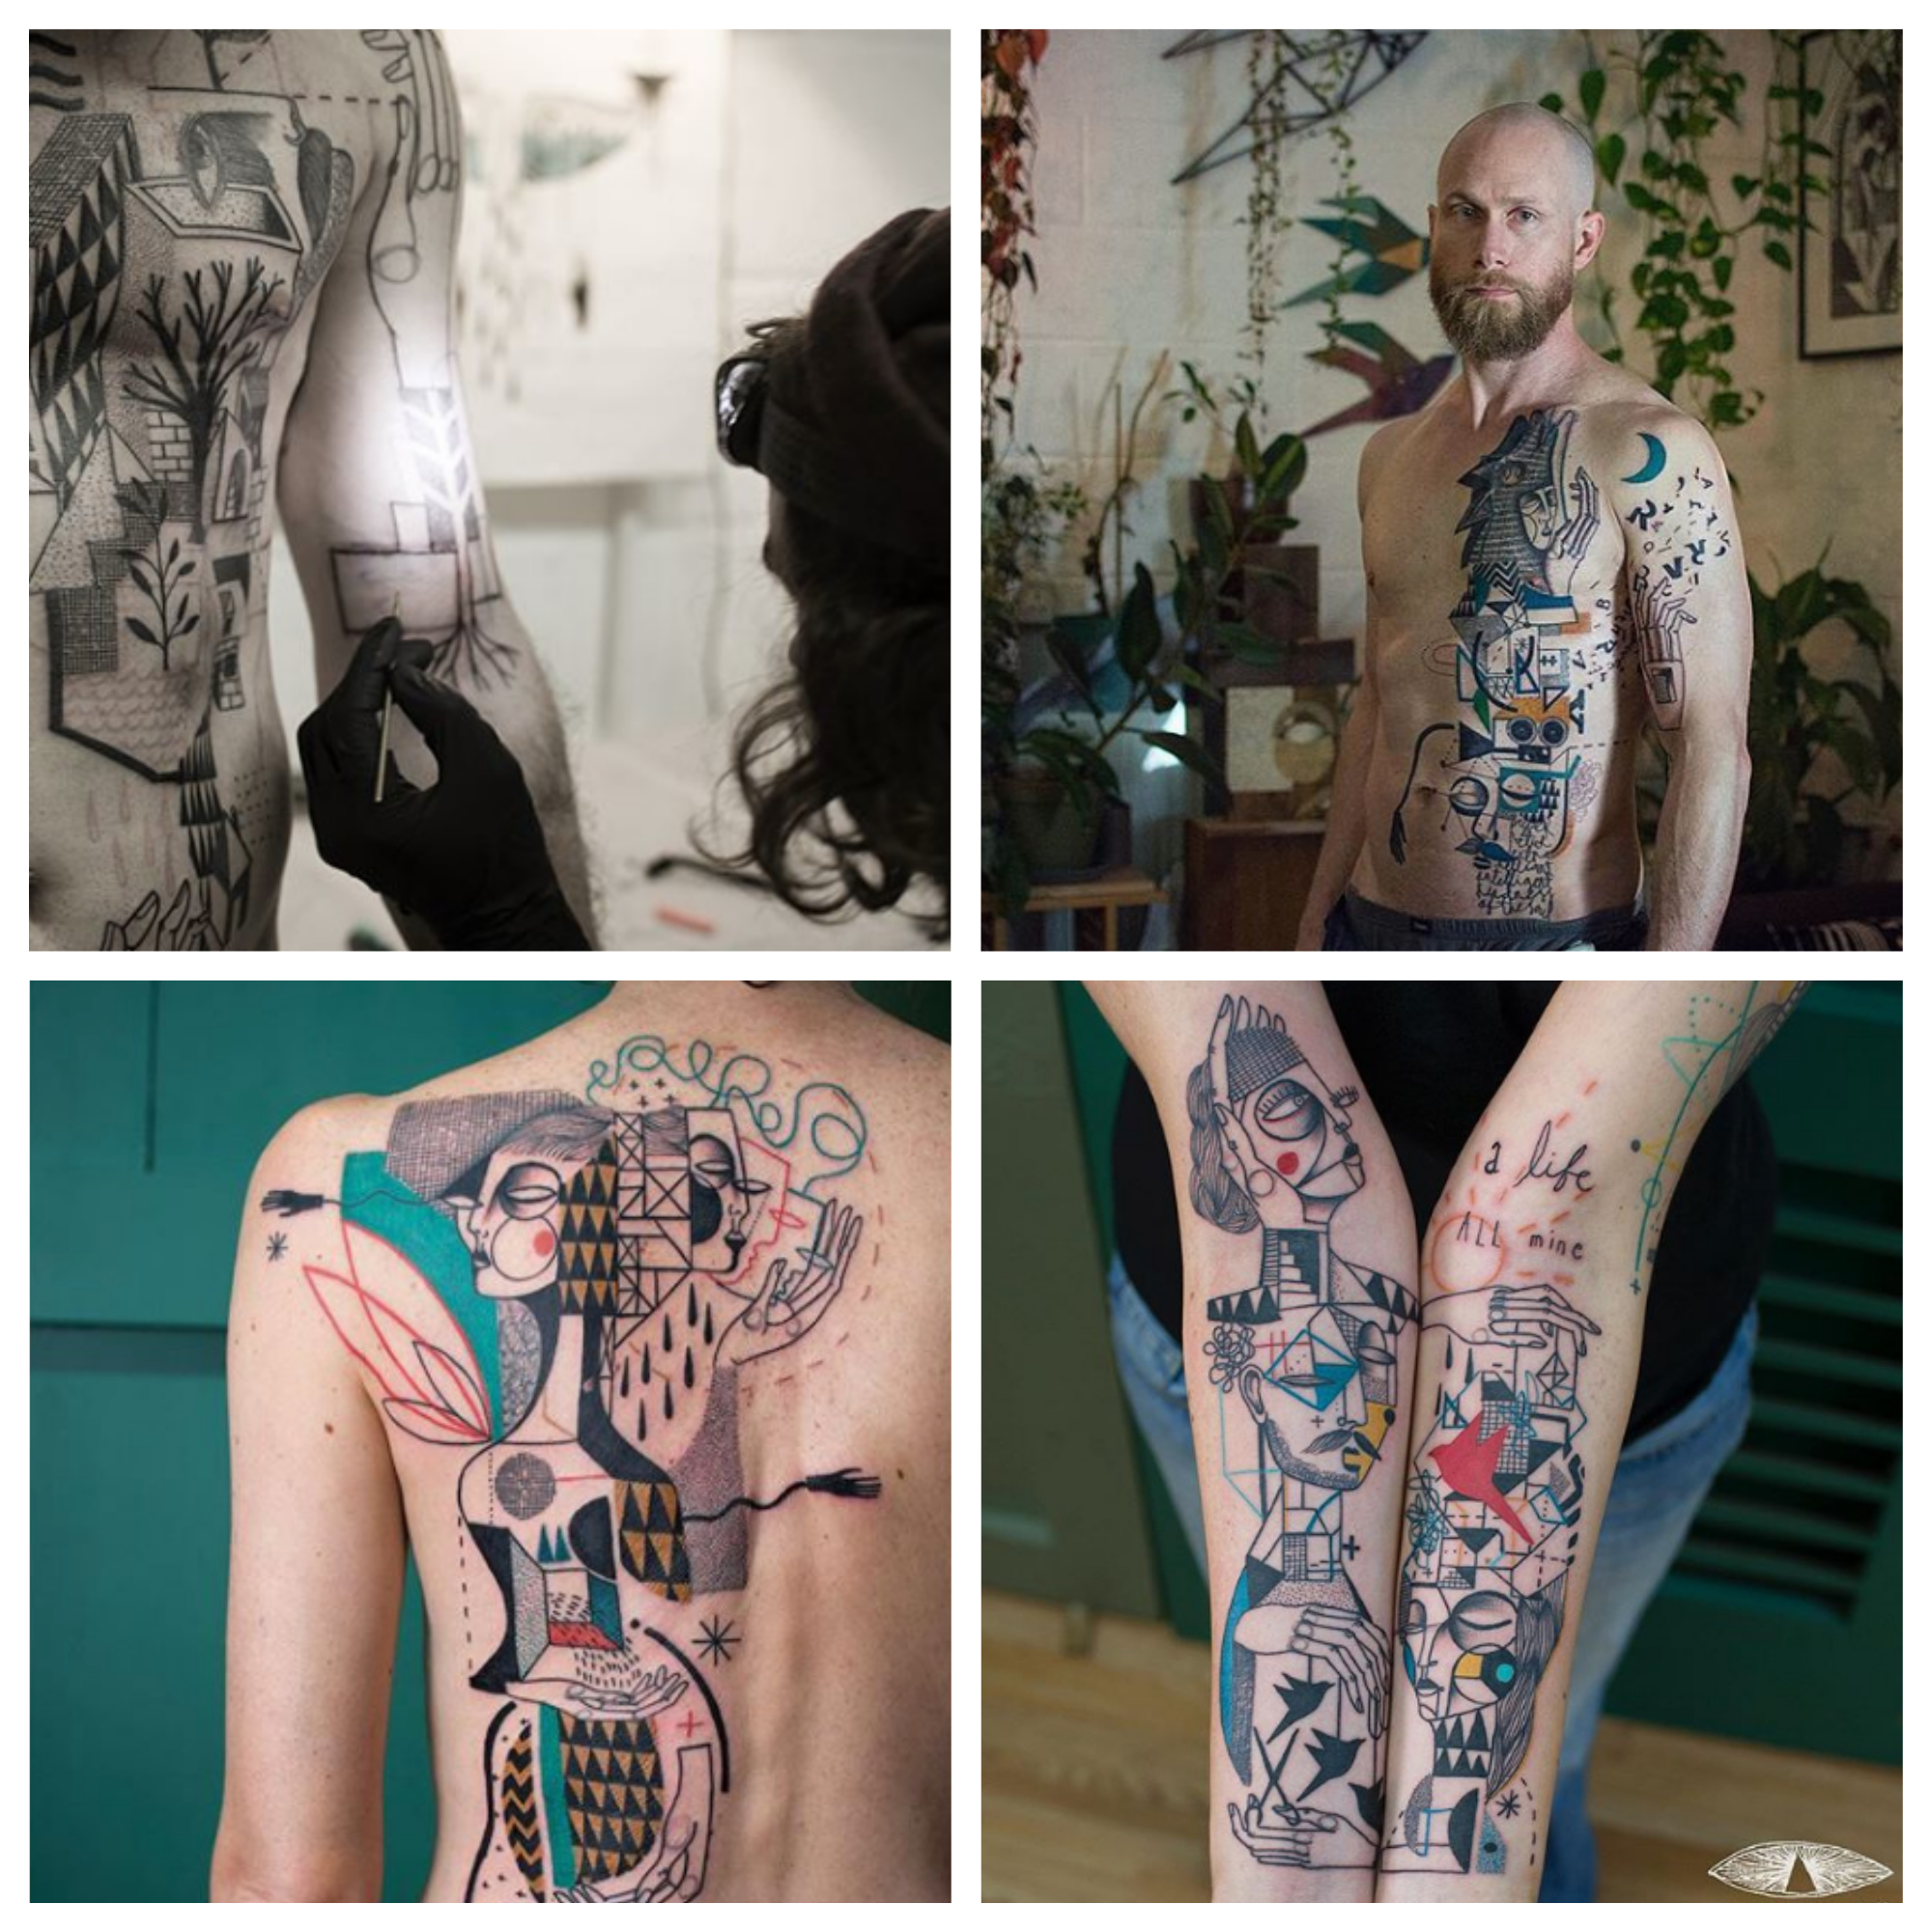 30 Best Tattoo Artists On Instagram To Follow Right Now